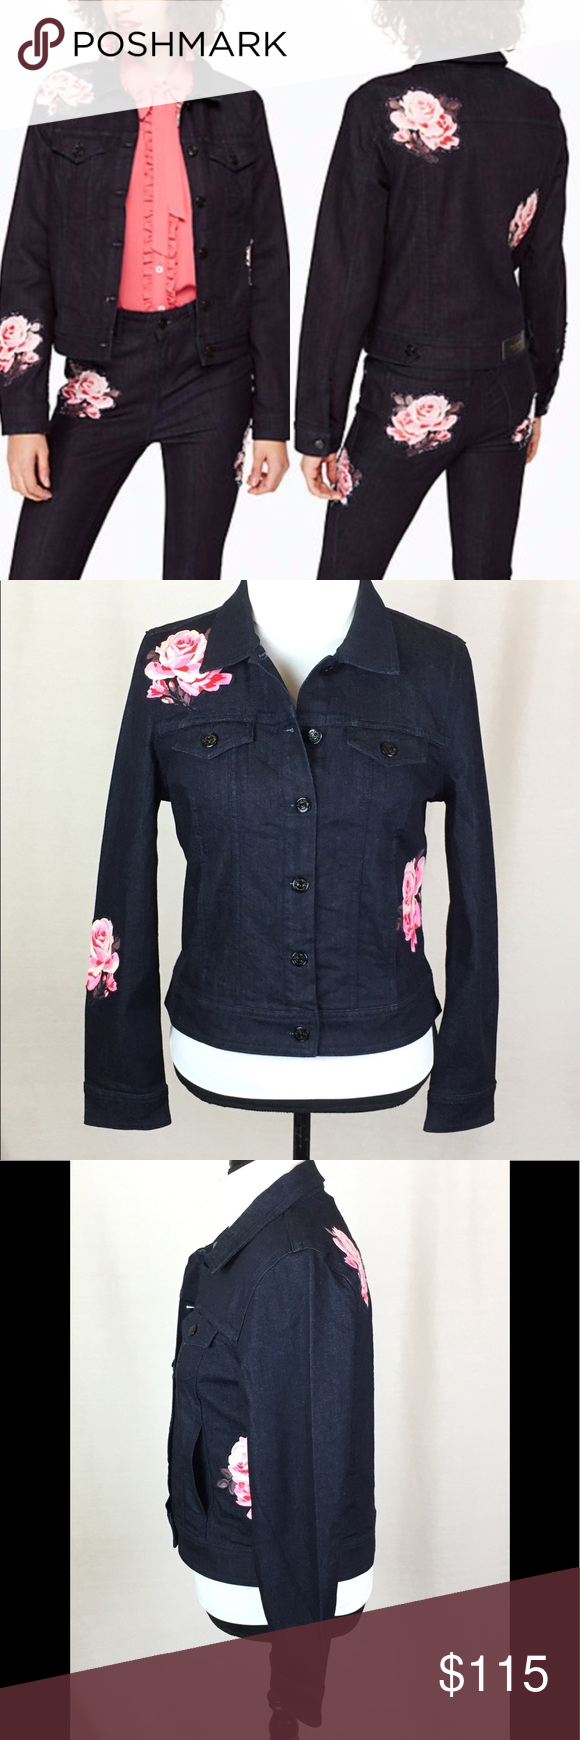 969c00a76e KATE SPADE BROOME STREET ROSE DENIM JACKET SIZE M New without tags. Kate  Spade Broome